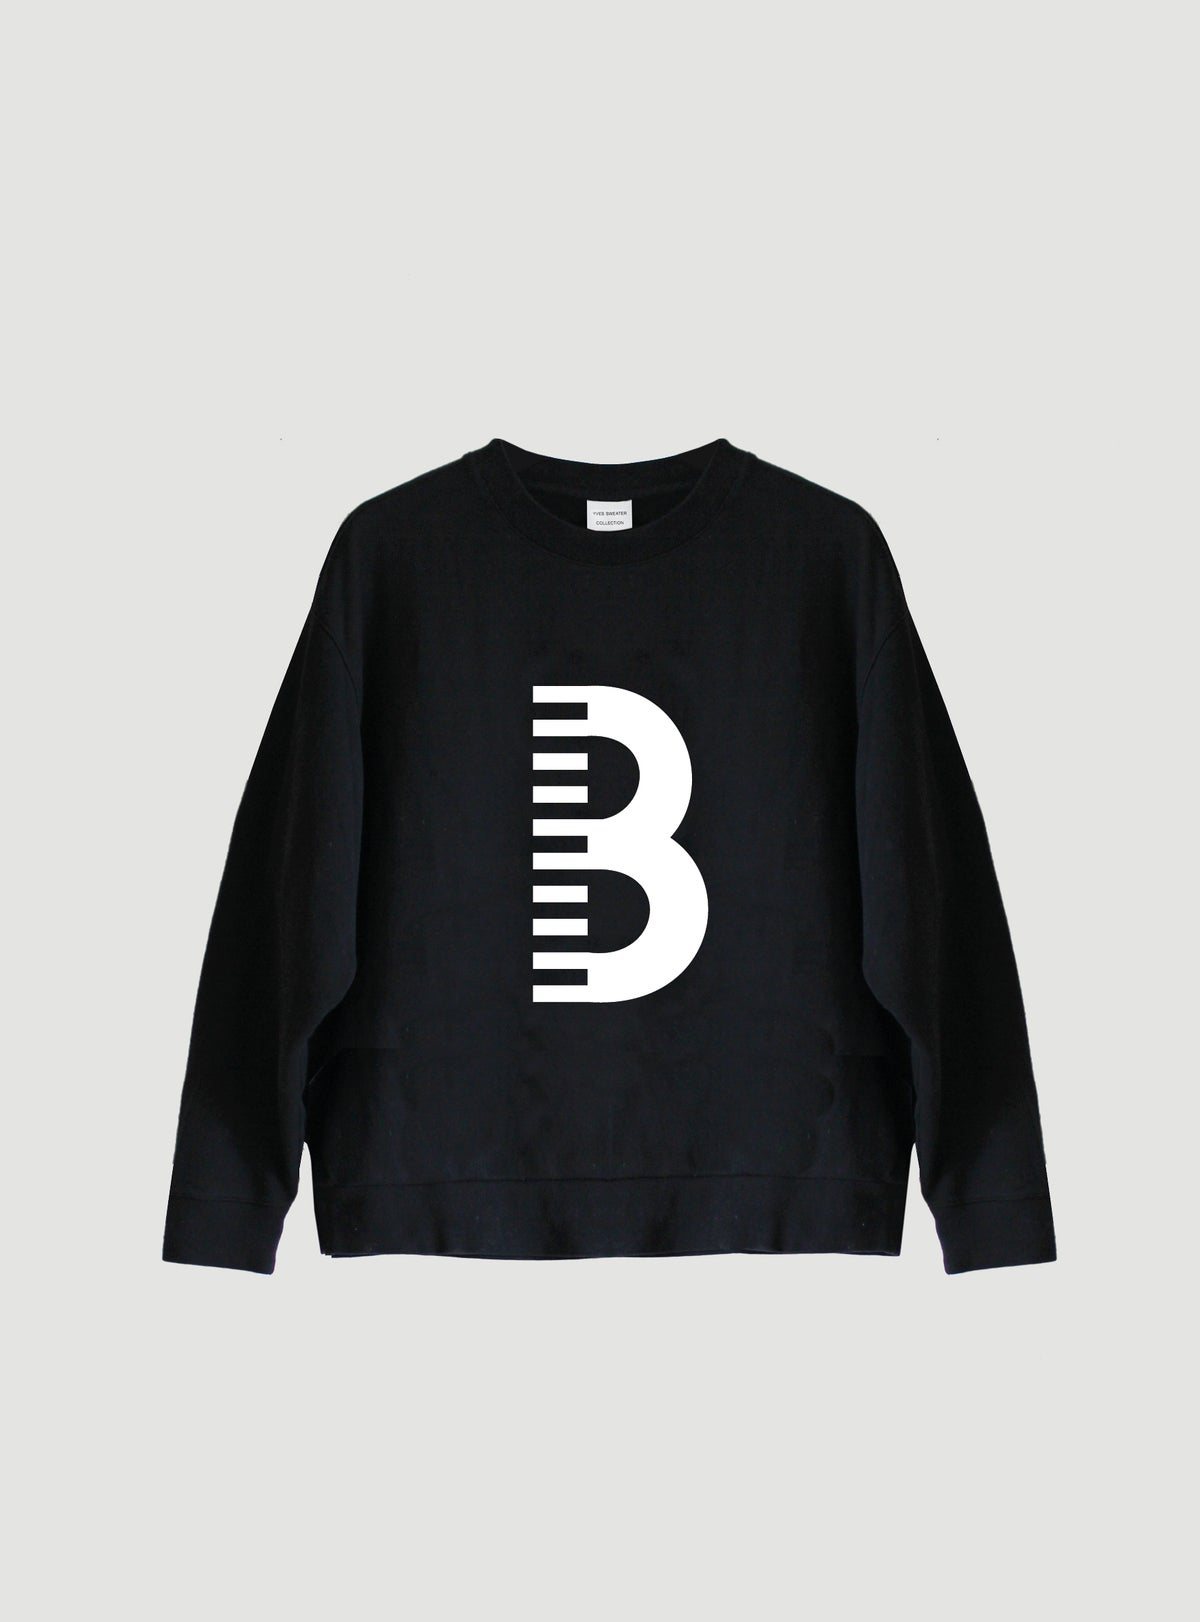 Image of B Sweater